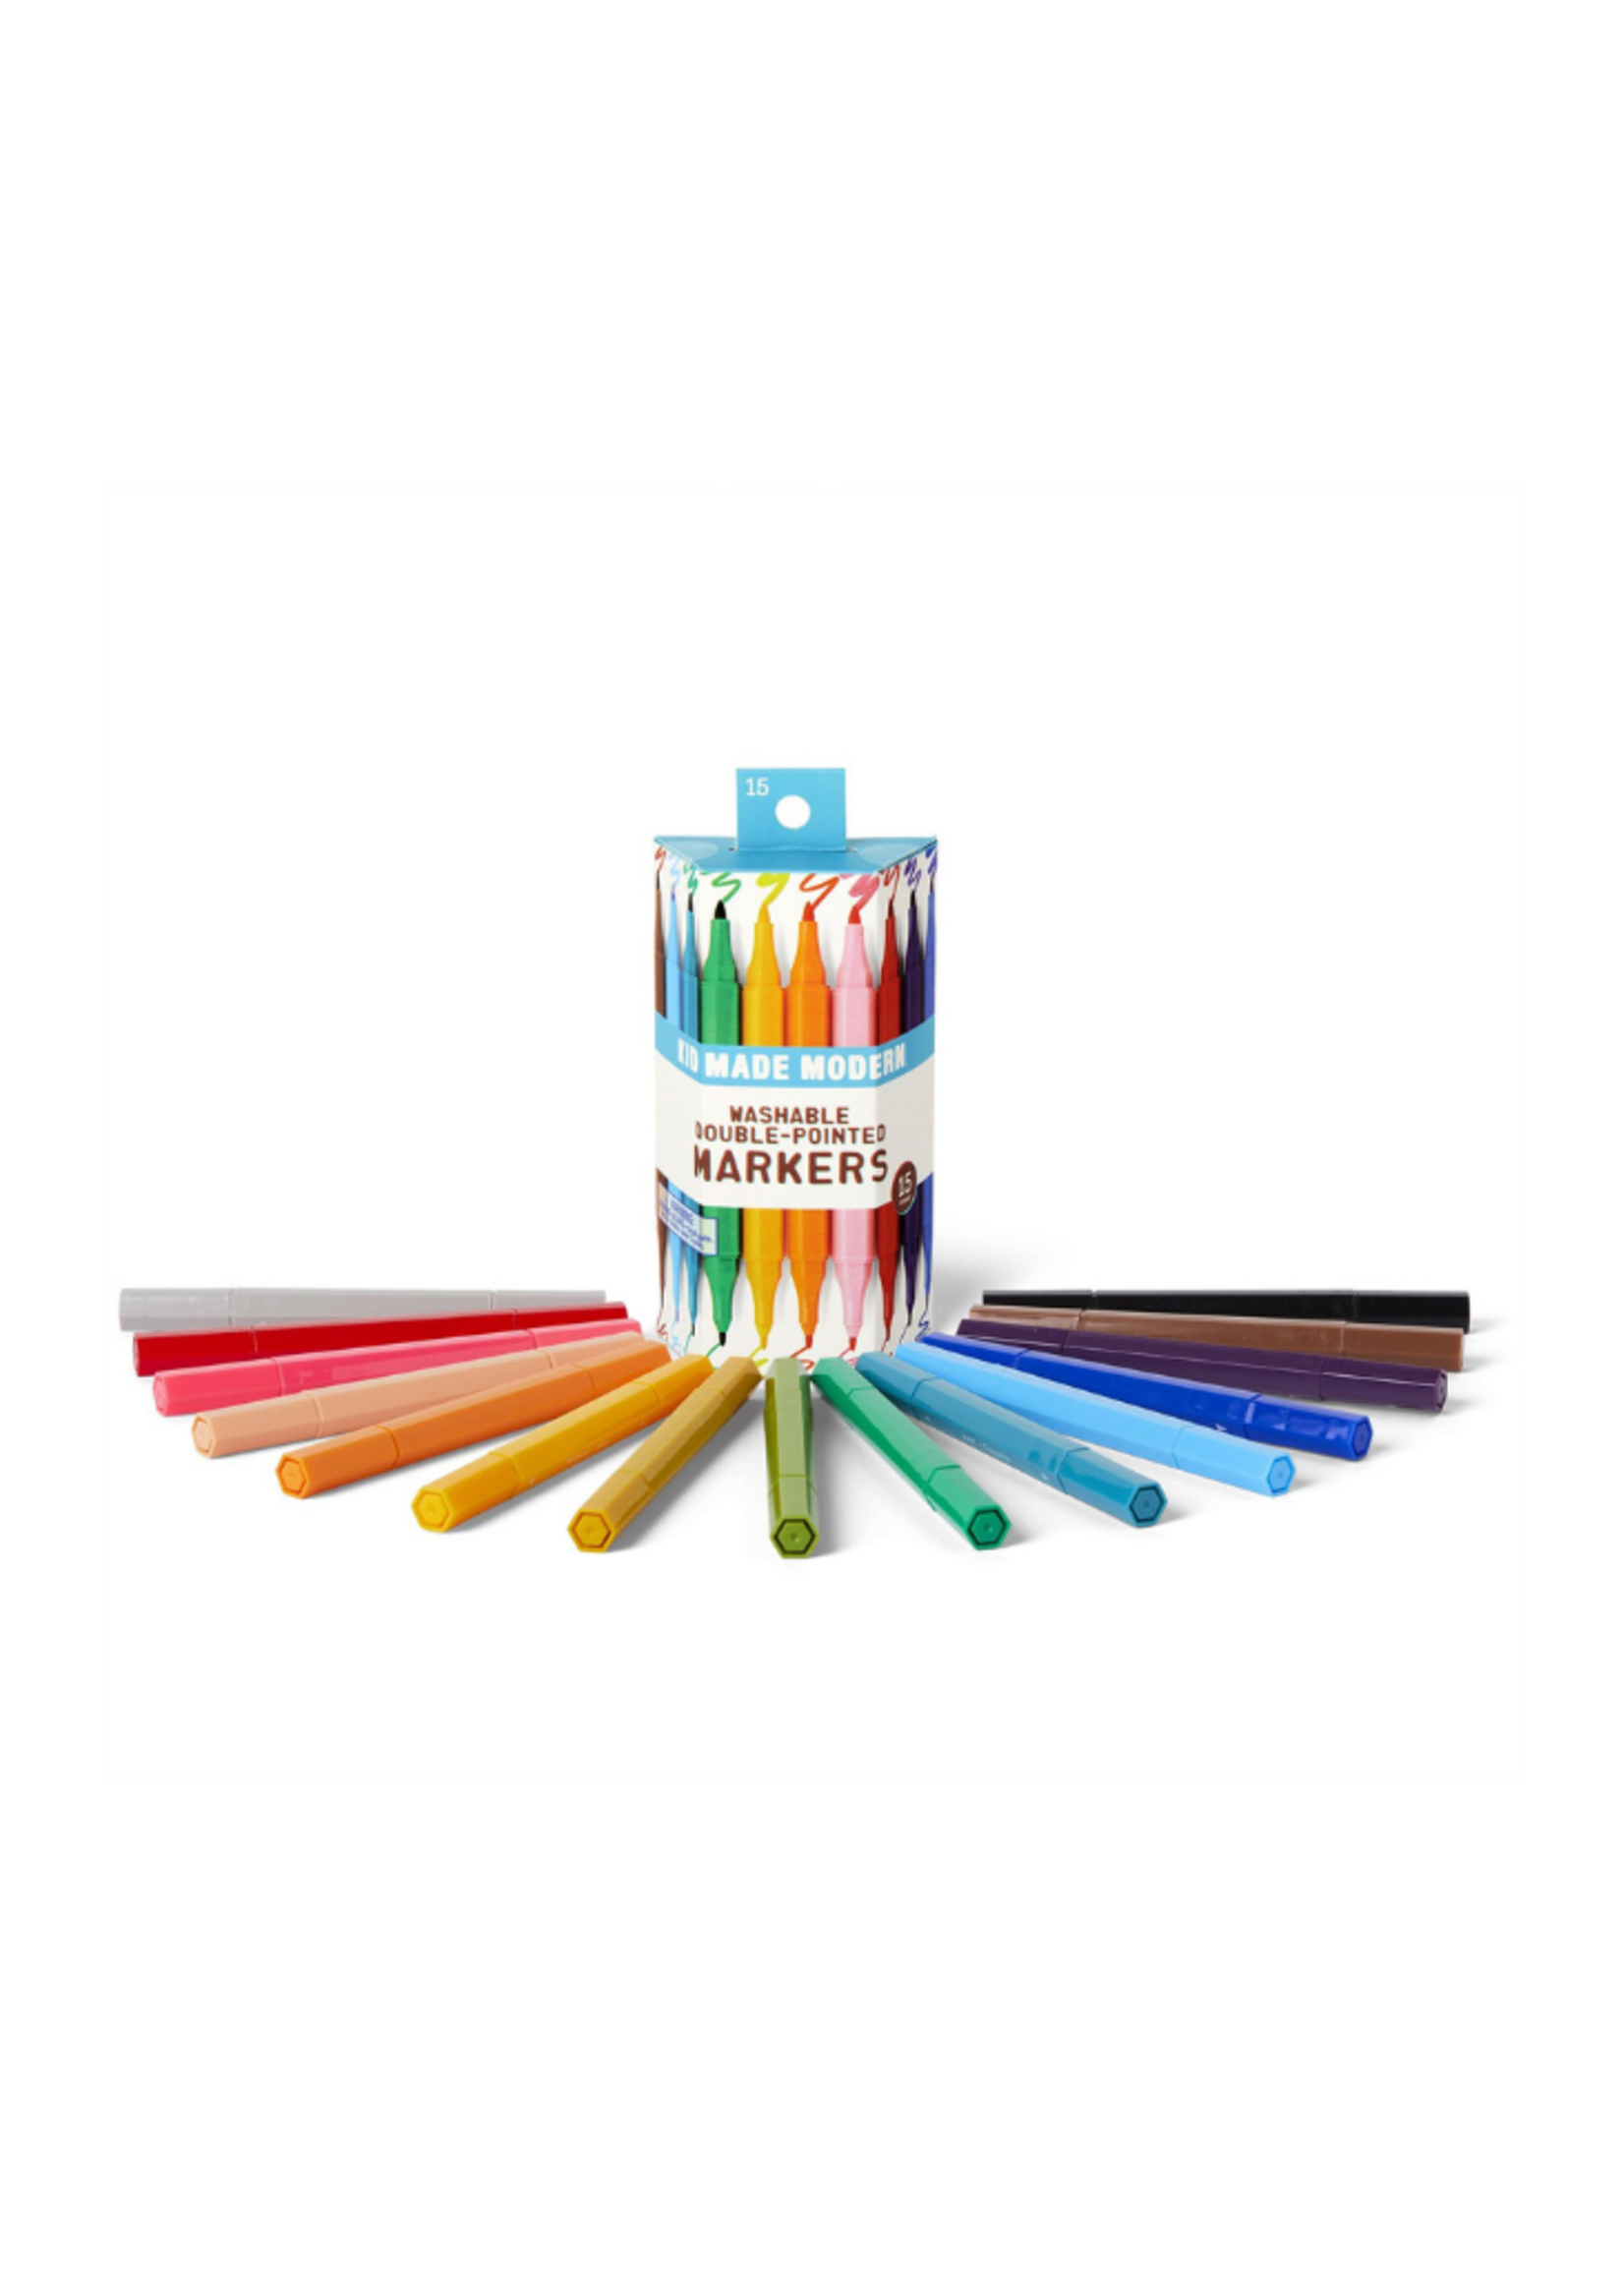 Kids Made Modern Kid Made Modern Double Pointed Washable Markers 15 Count